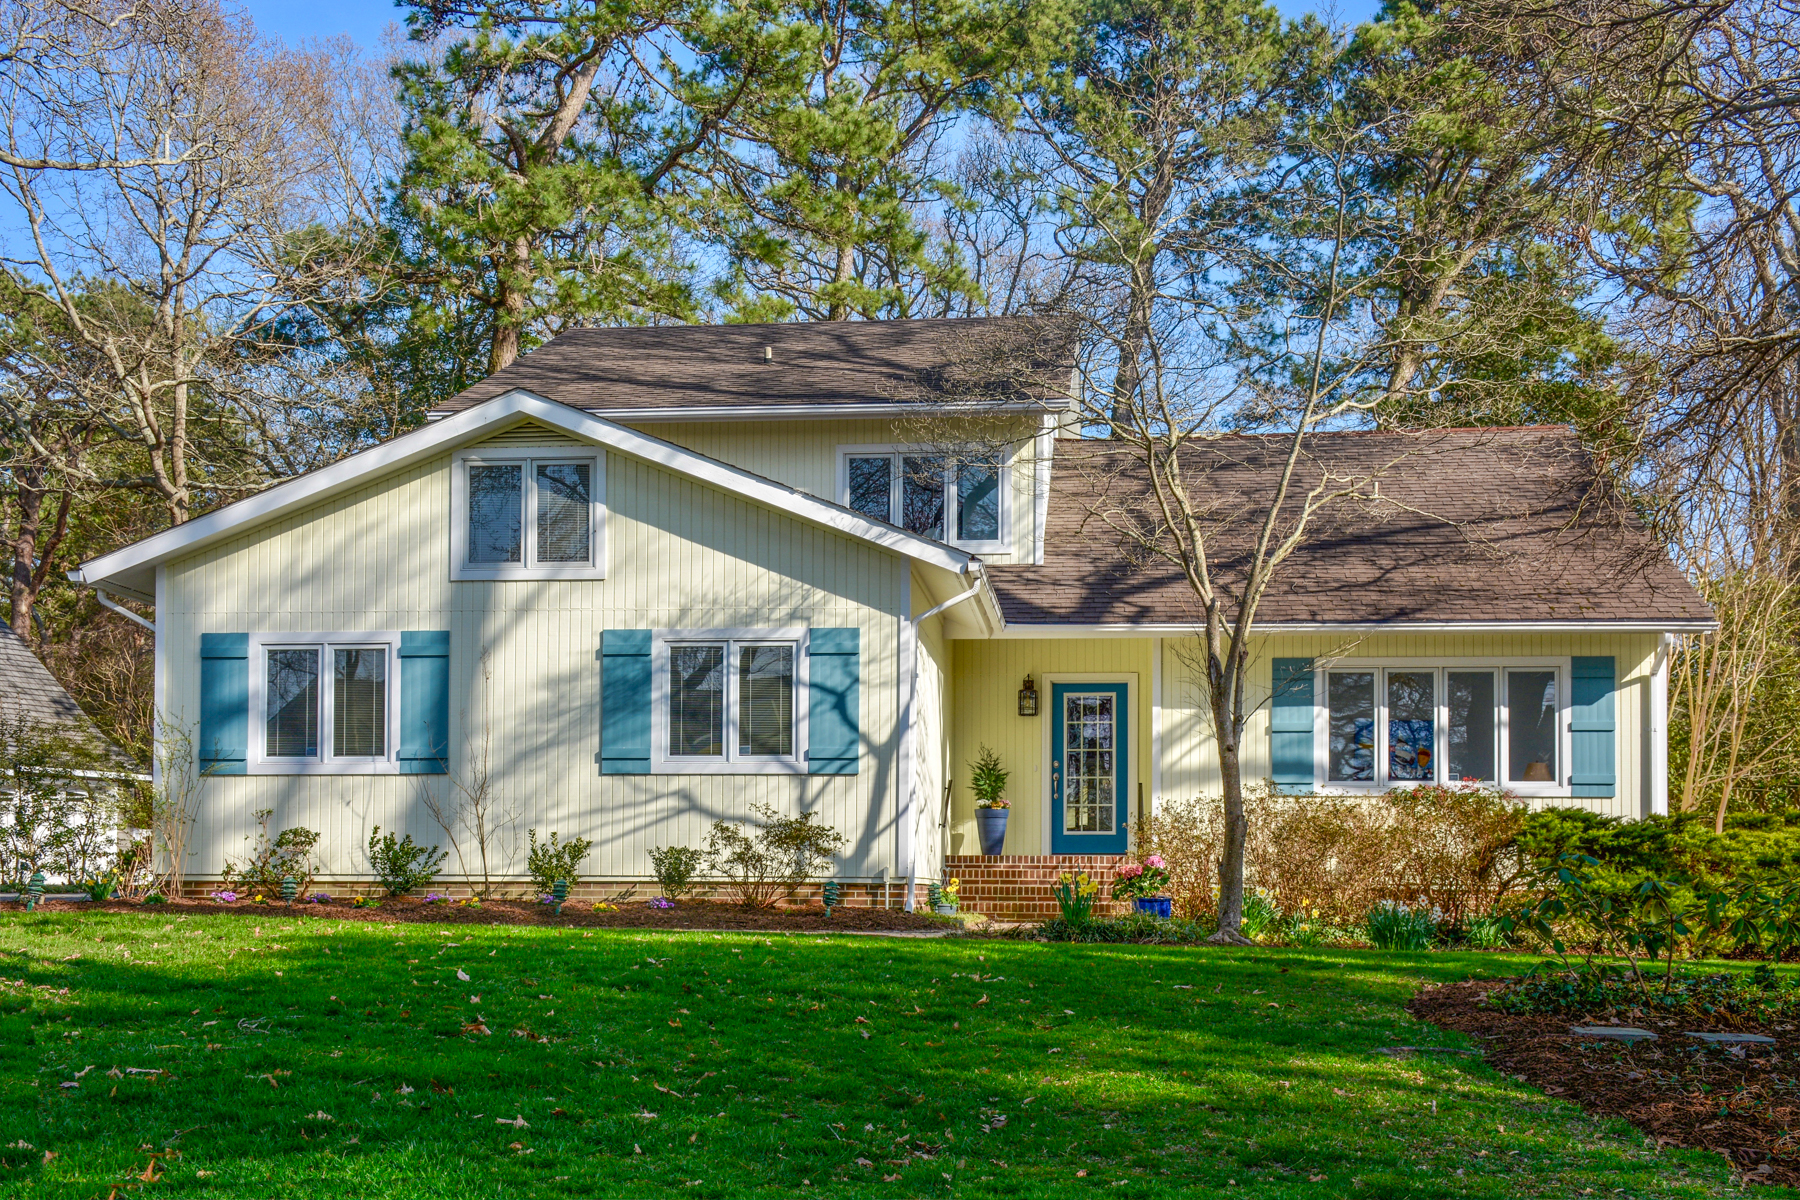 single family homes for Sale at 26 Tidewaters Road , Rehoboth Beach, DE 19971 26 Tidewaters Road Rehoboth Beach, Delaware 19971 United States